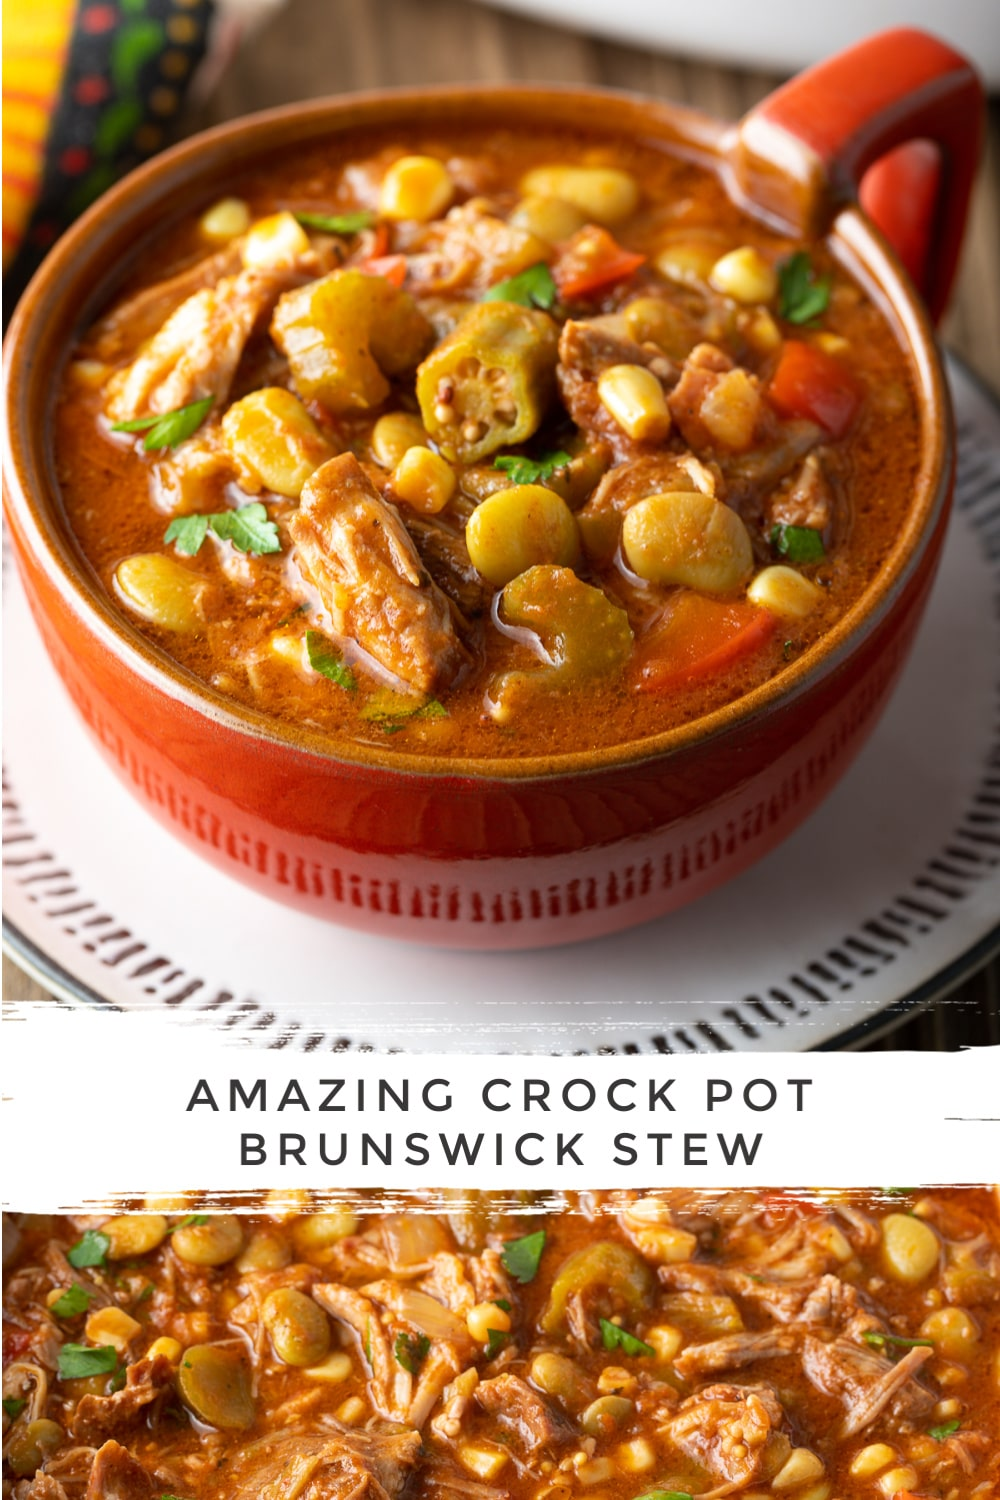 Easy Slow Cooker Brunswick Stew Recipe #ASpicyPerspective #brunswick #stew #crockpot #fall #bbq